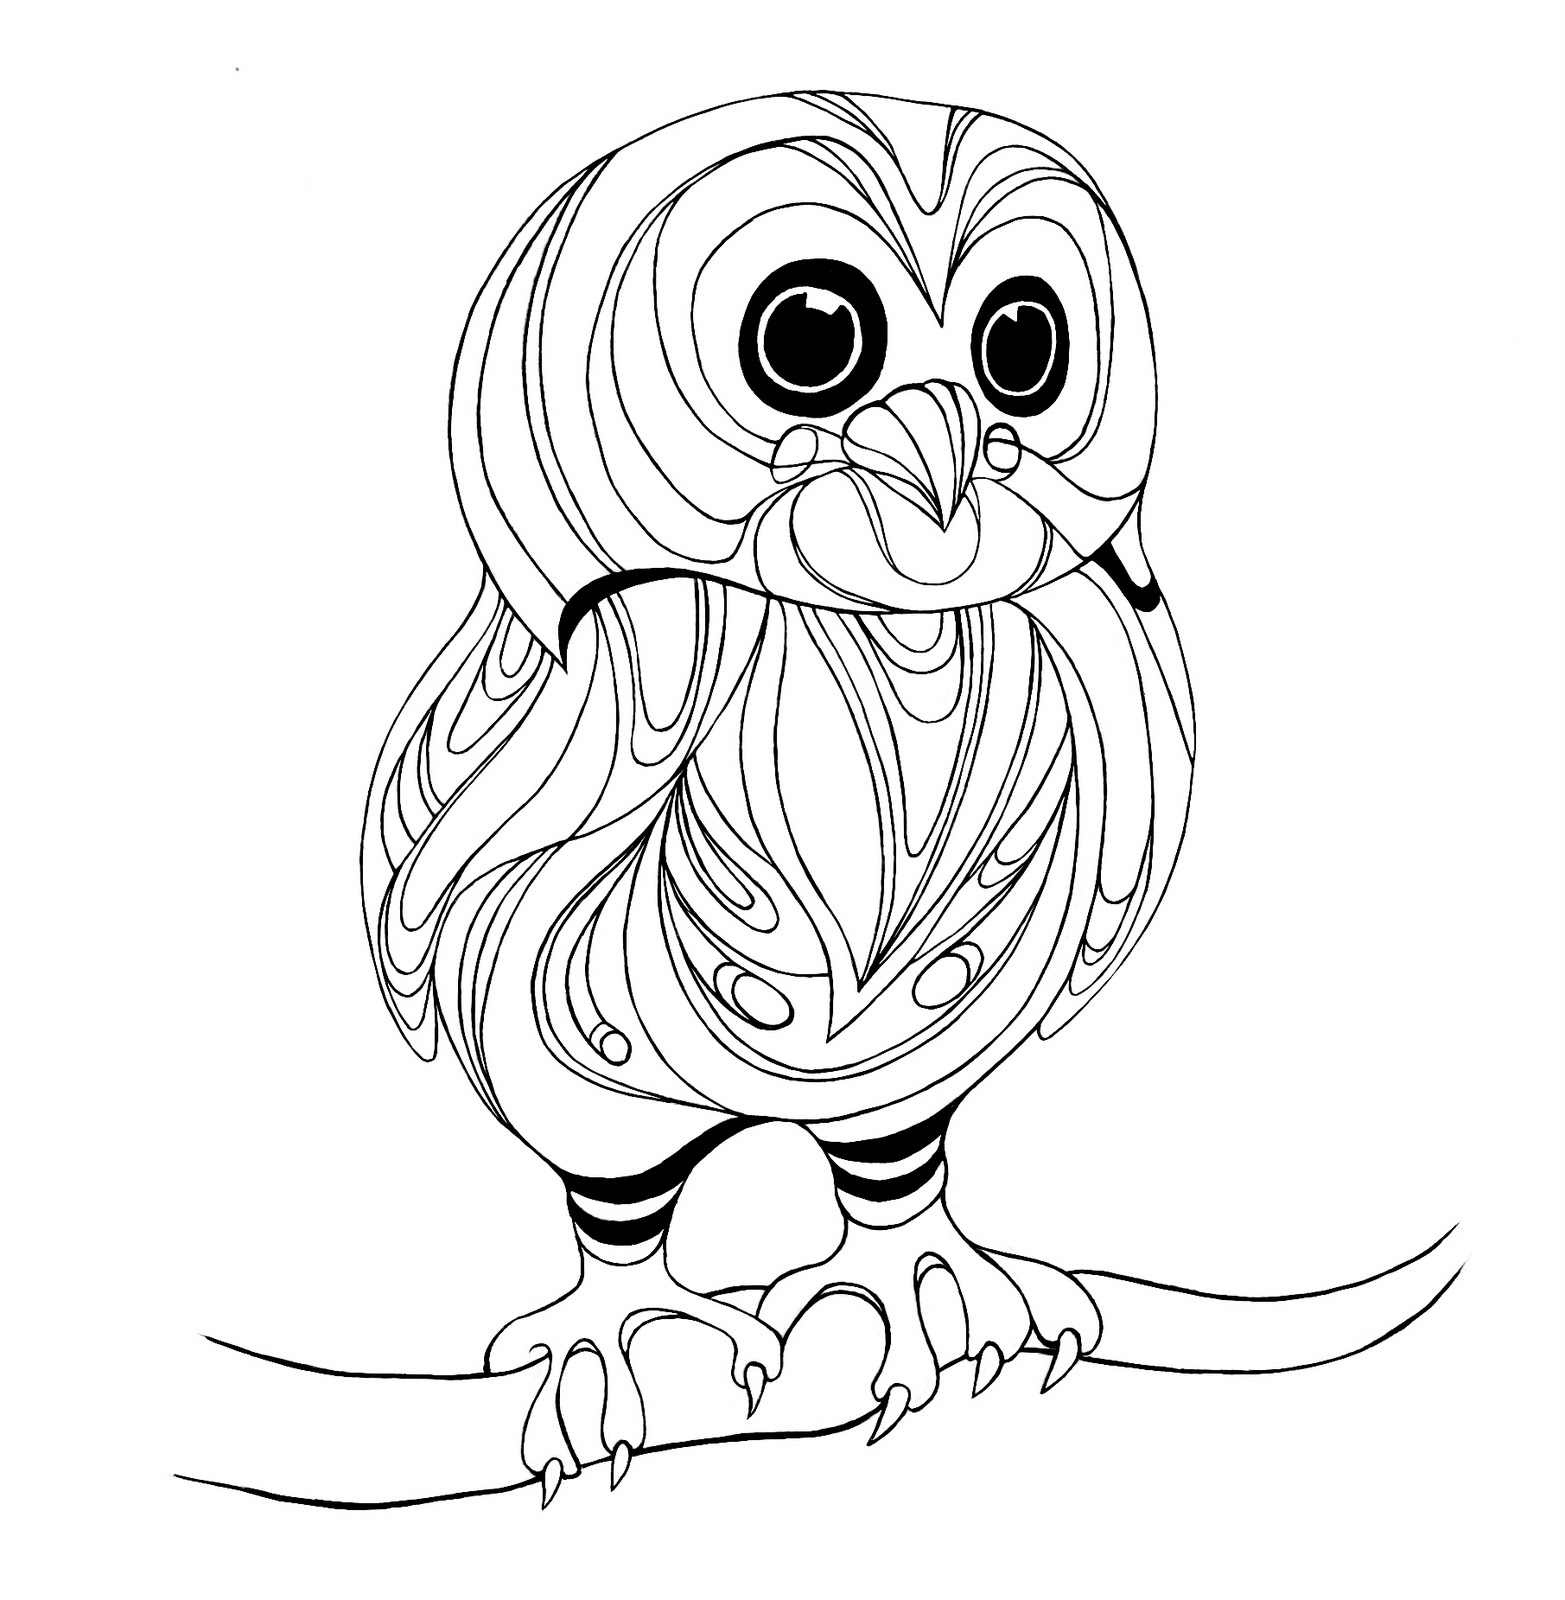 owl printable coloring pages nocturnal bird owl coloring pages 34 pictures cartoon clip coloring owl pages printable